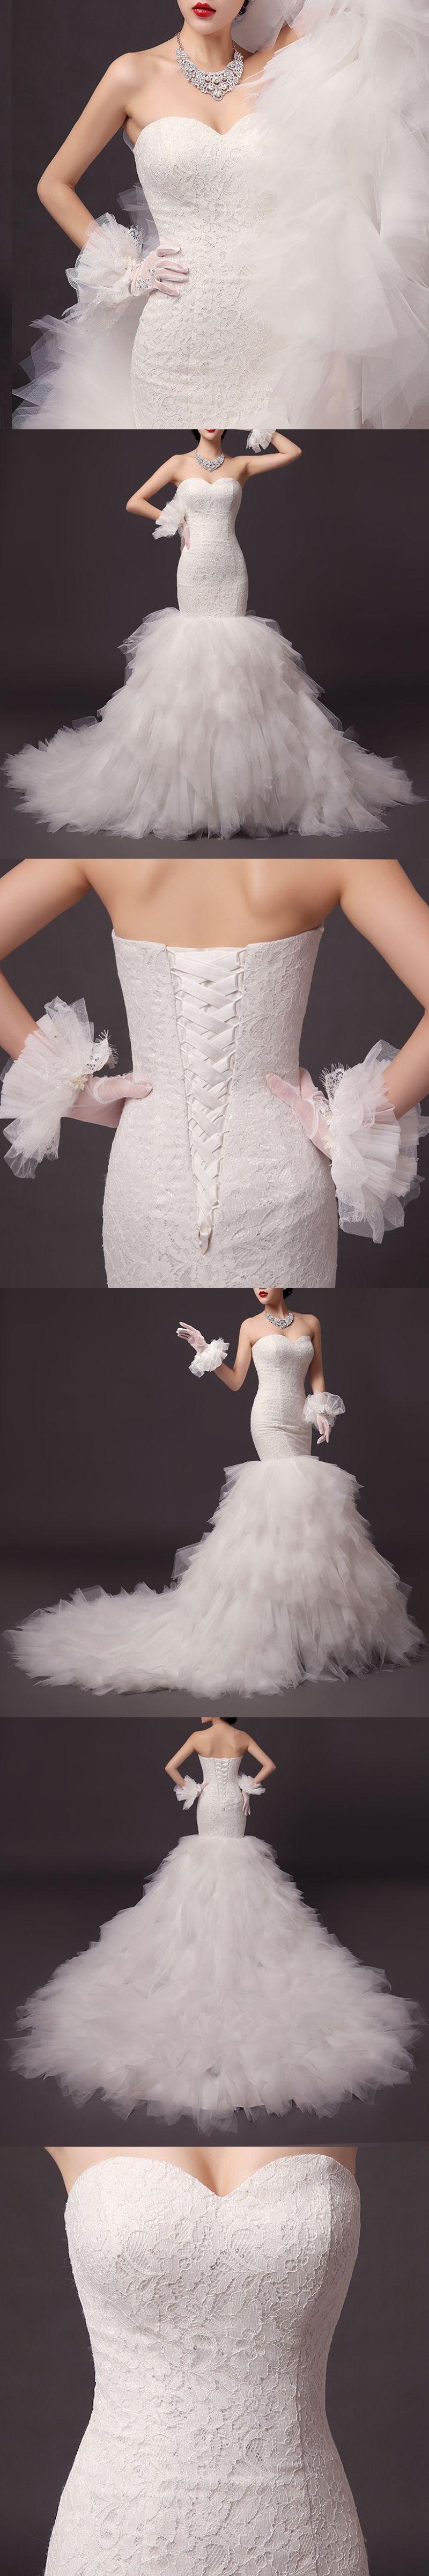 Lace mermaid wedding gowns with long trains  Lace Mermaid Wedding Dress Sweetheart Draped Long Train Vintage